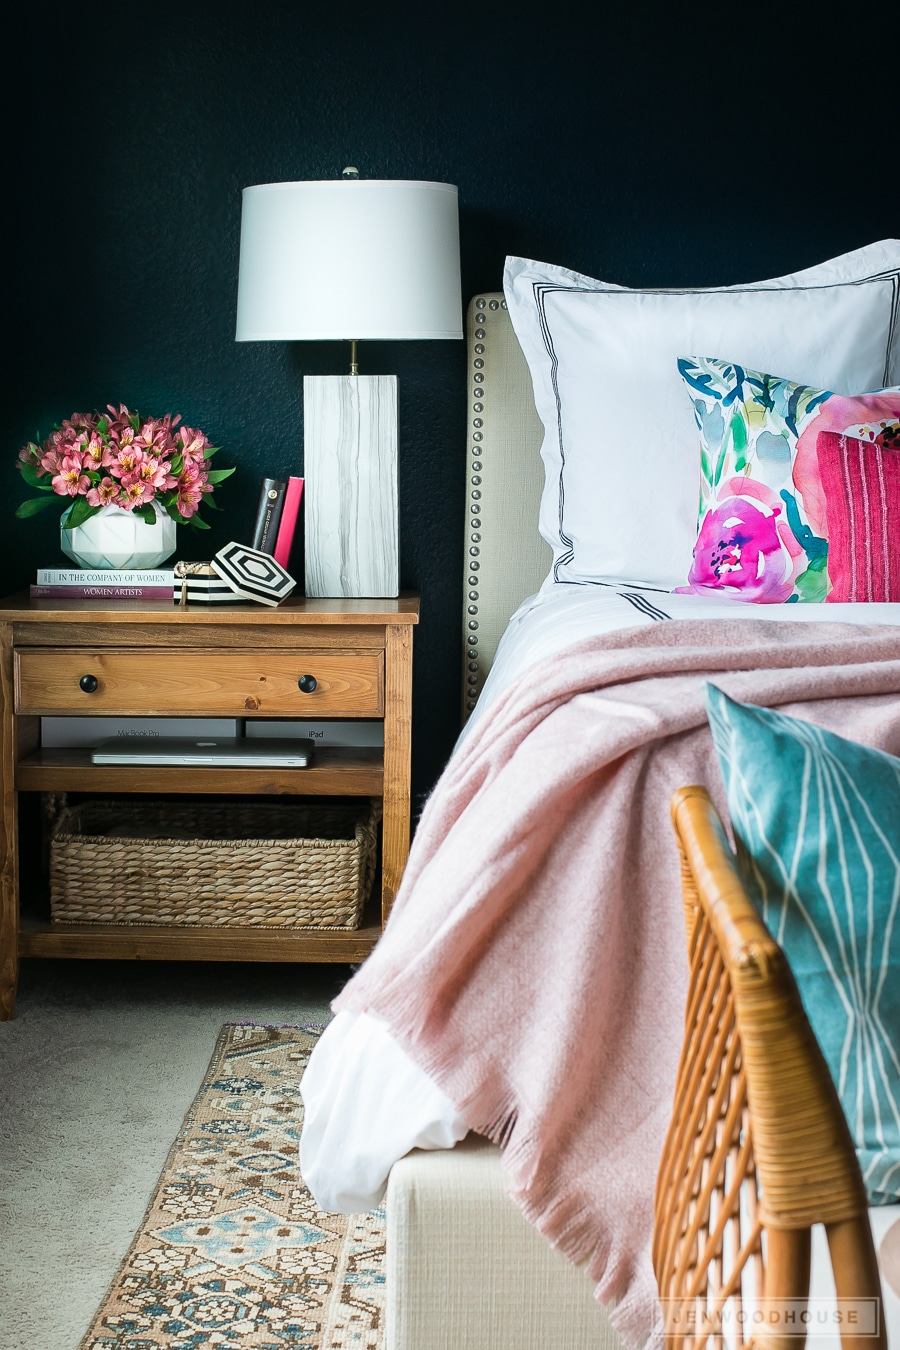 Add simple touches of Spring to your master bedroom by adding floral pillows and fresh flowers